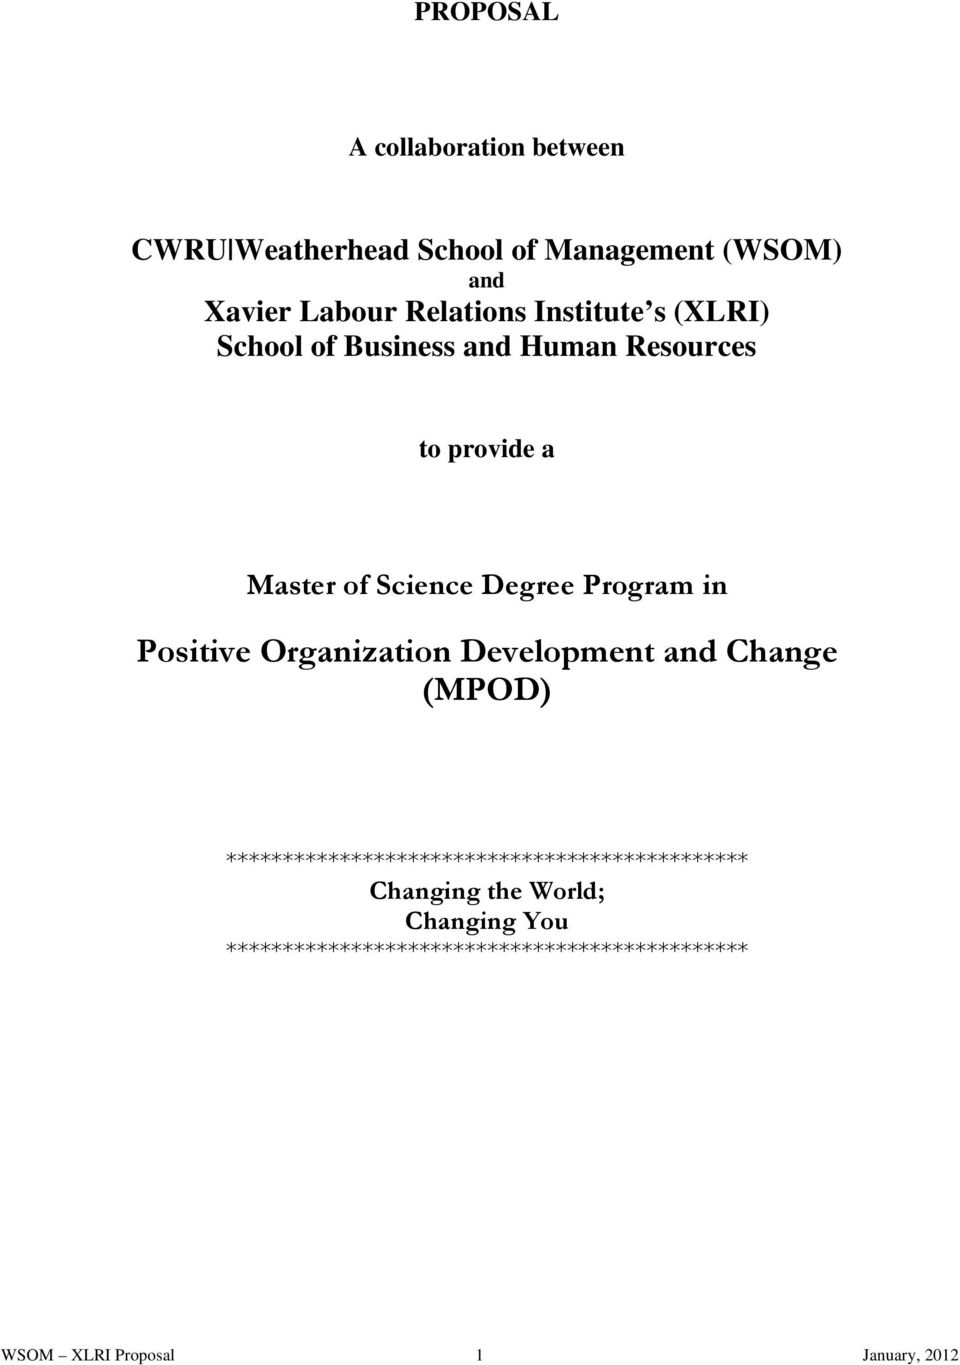 Positive Organization Development and Change (MPOD) **********************************************